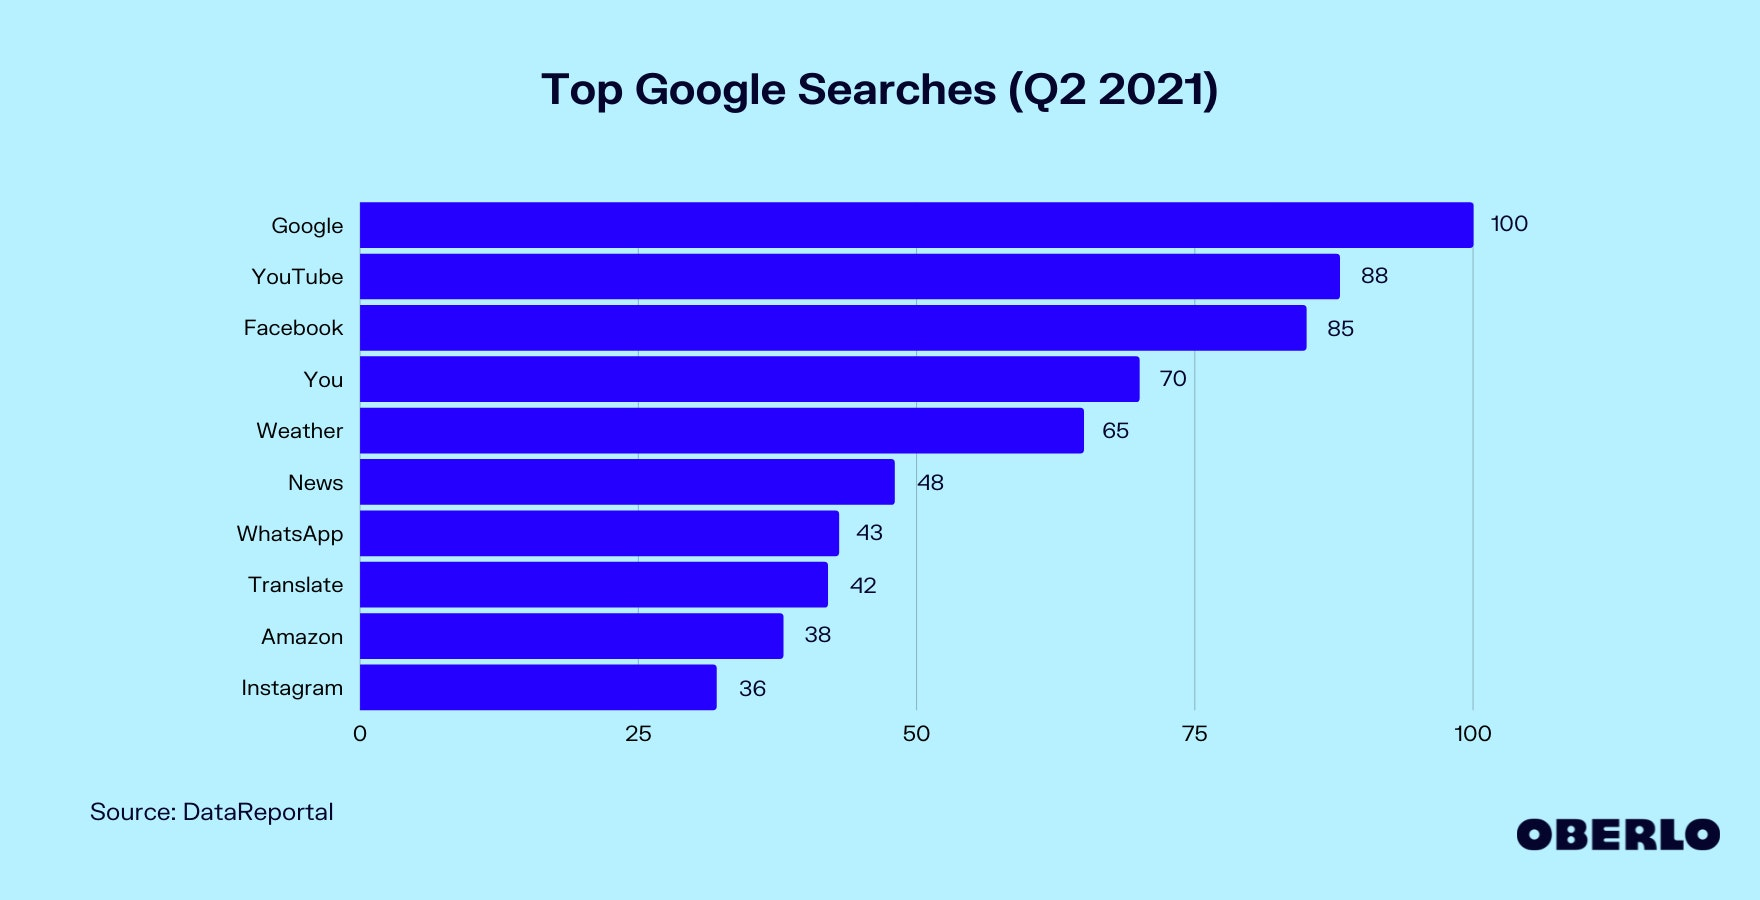 Chart of Top Google Searches (Q2 2021)